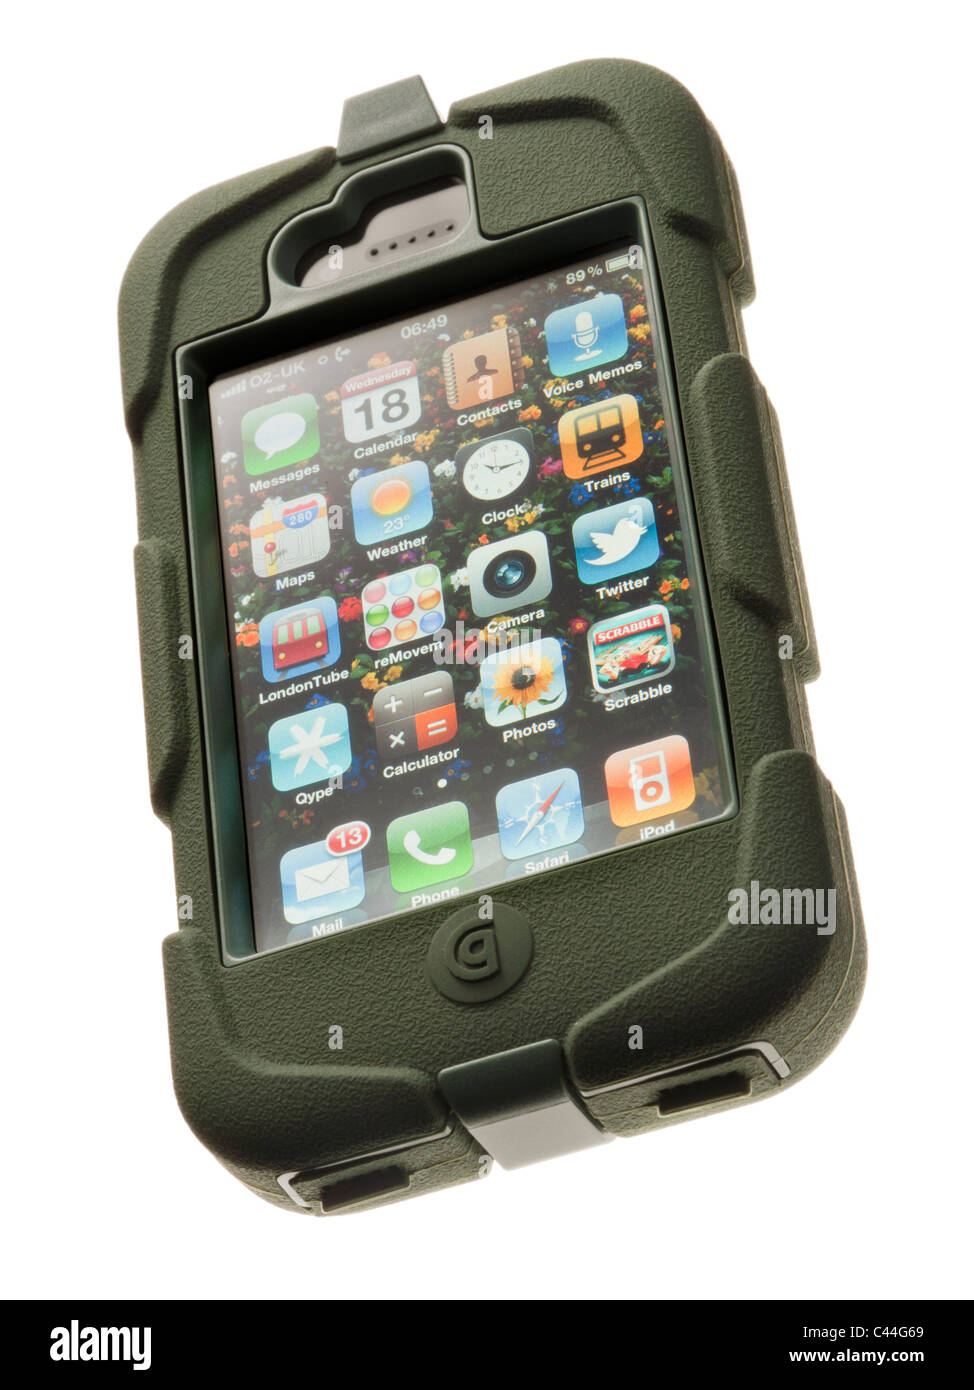 Apple iPhone 4 in tough case - Stock Image